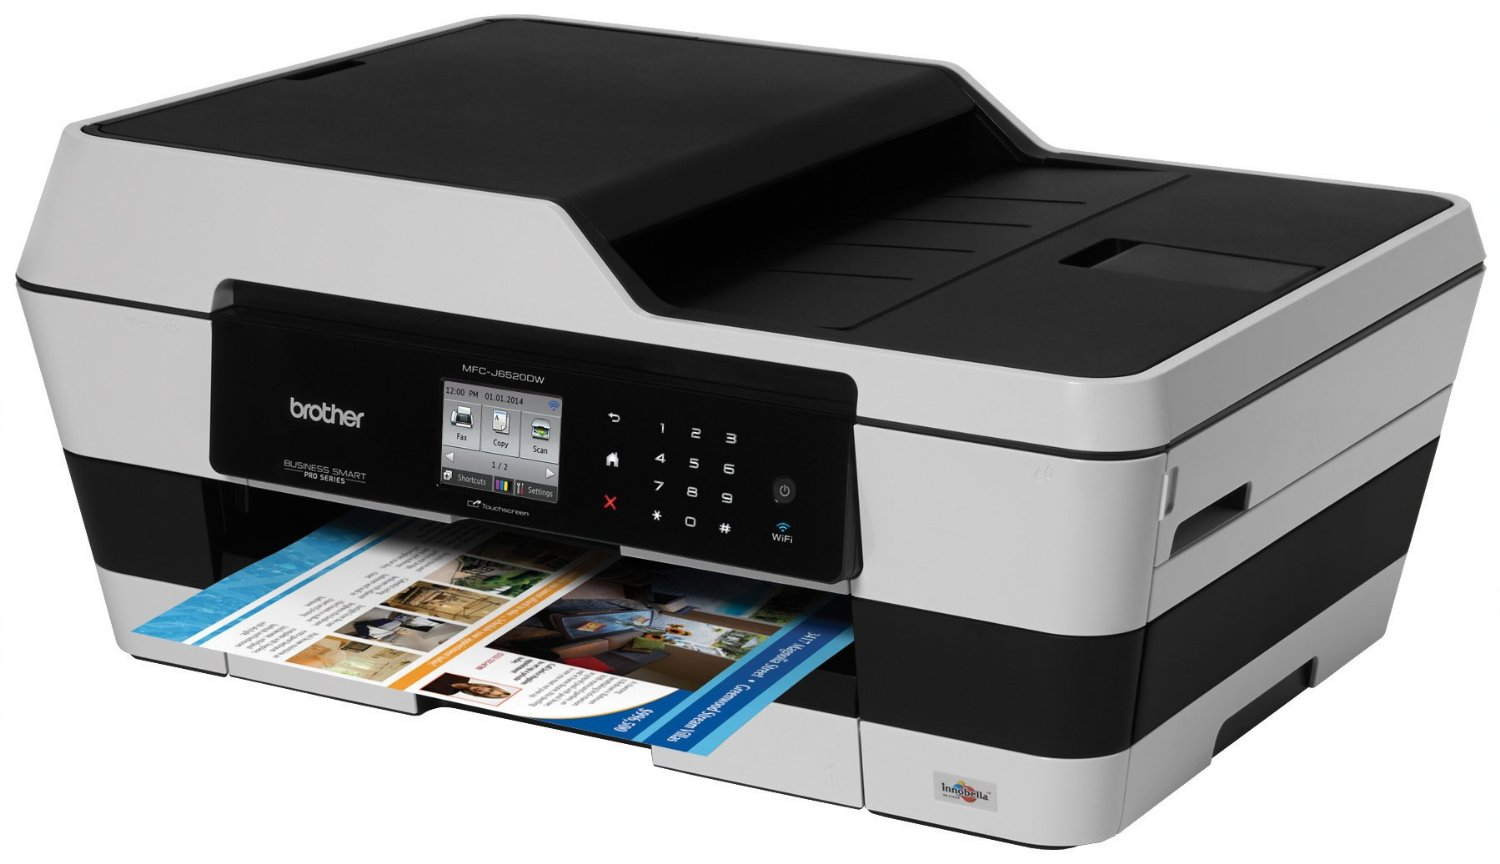 brother wireless color printer scanner copier fax mfc j6520dw